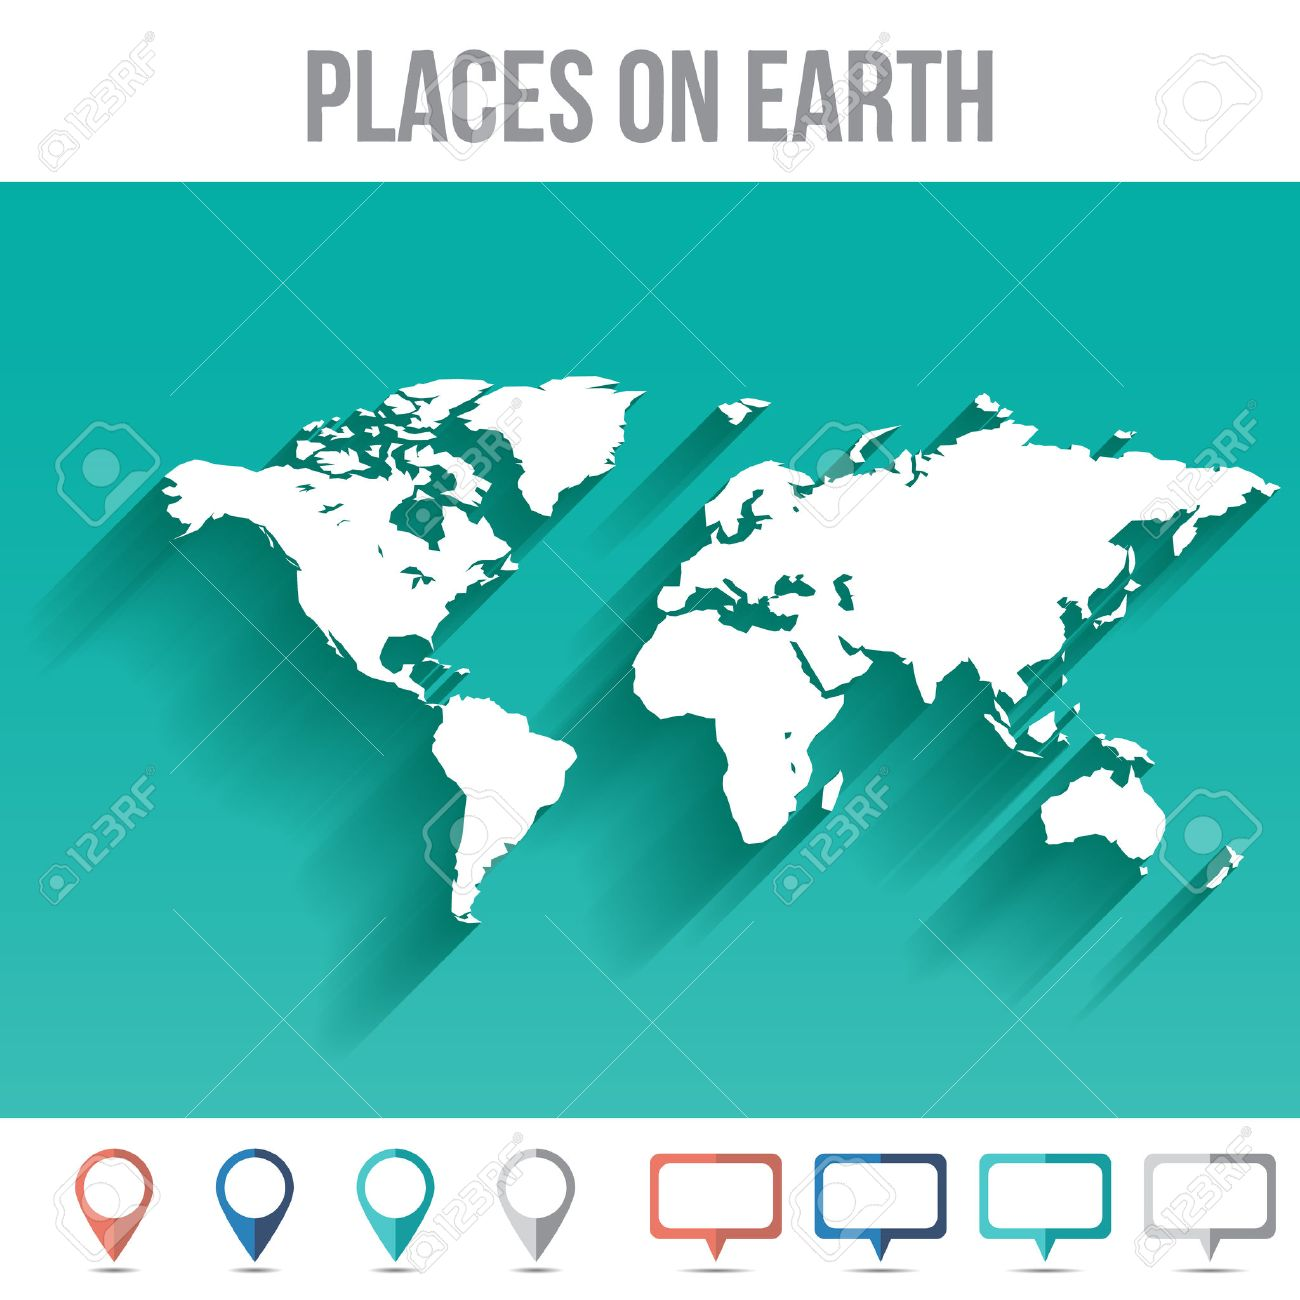 Places on earth world map flat vector illustration for your places on earth world map flat vector illustration for your projects stock vector 36562012 gumiabroncs Image collections